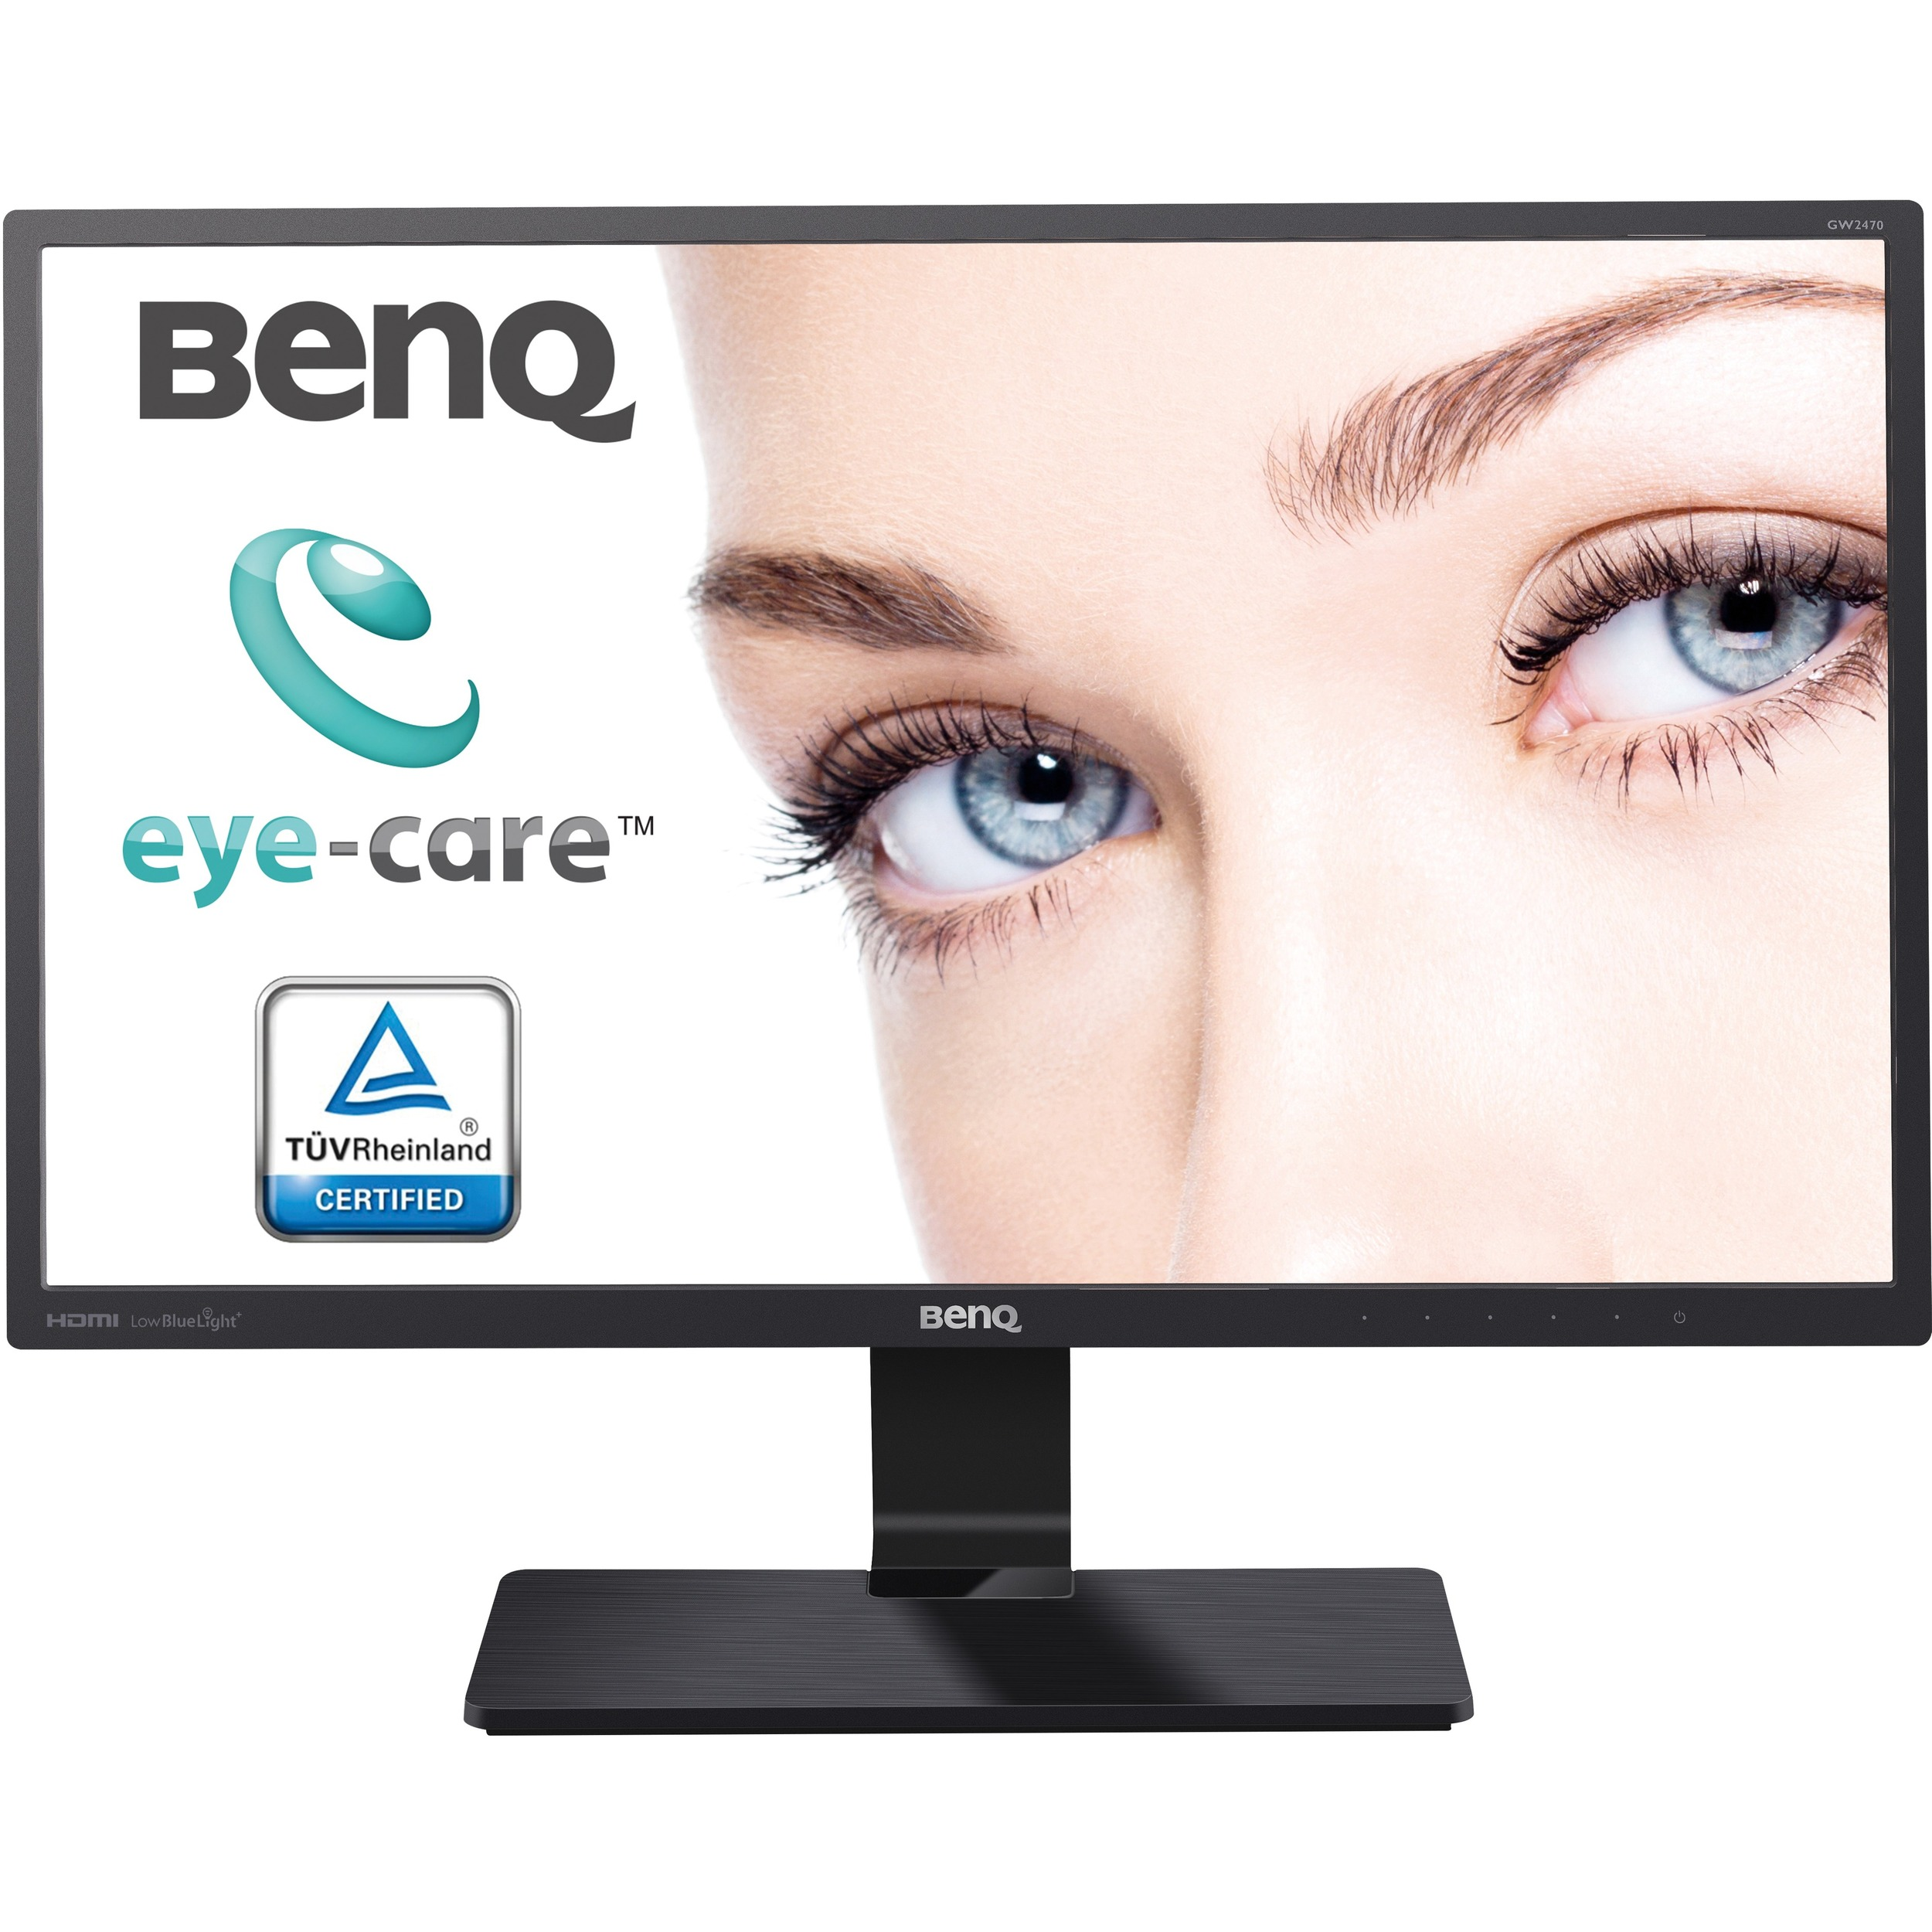 BenQ GW2470HL 23.8inch LED LCD Monitor - 16:9 - 4 ms